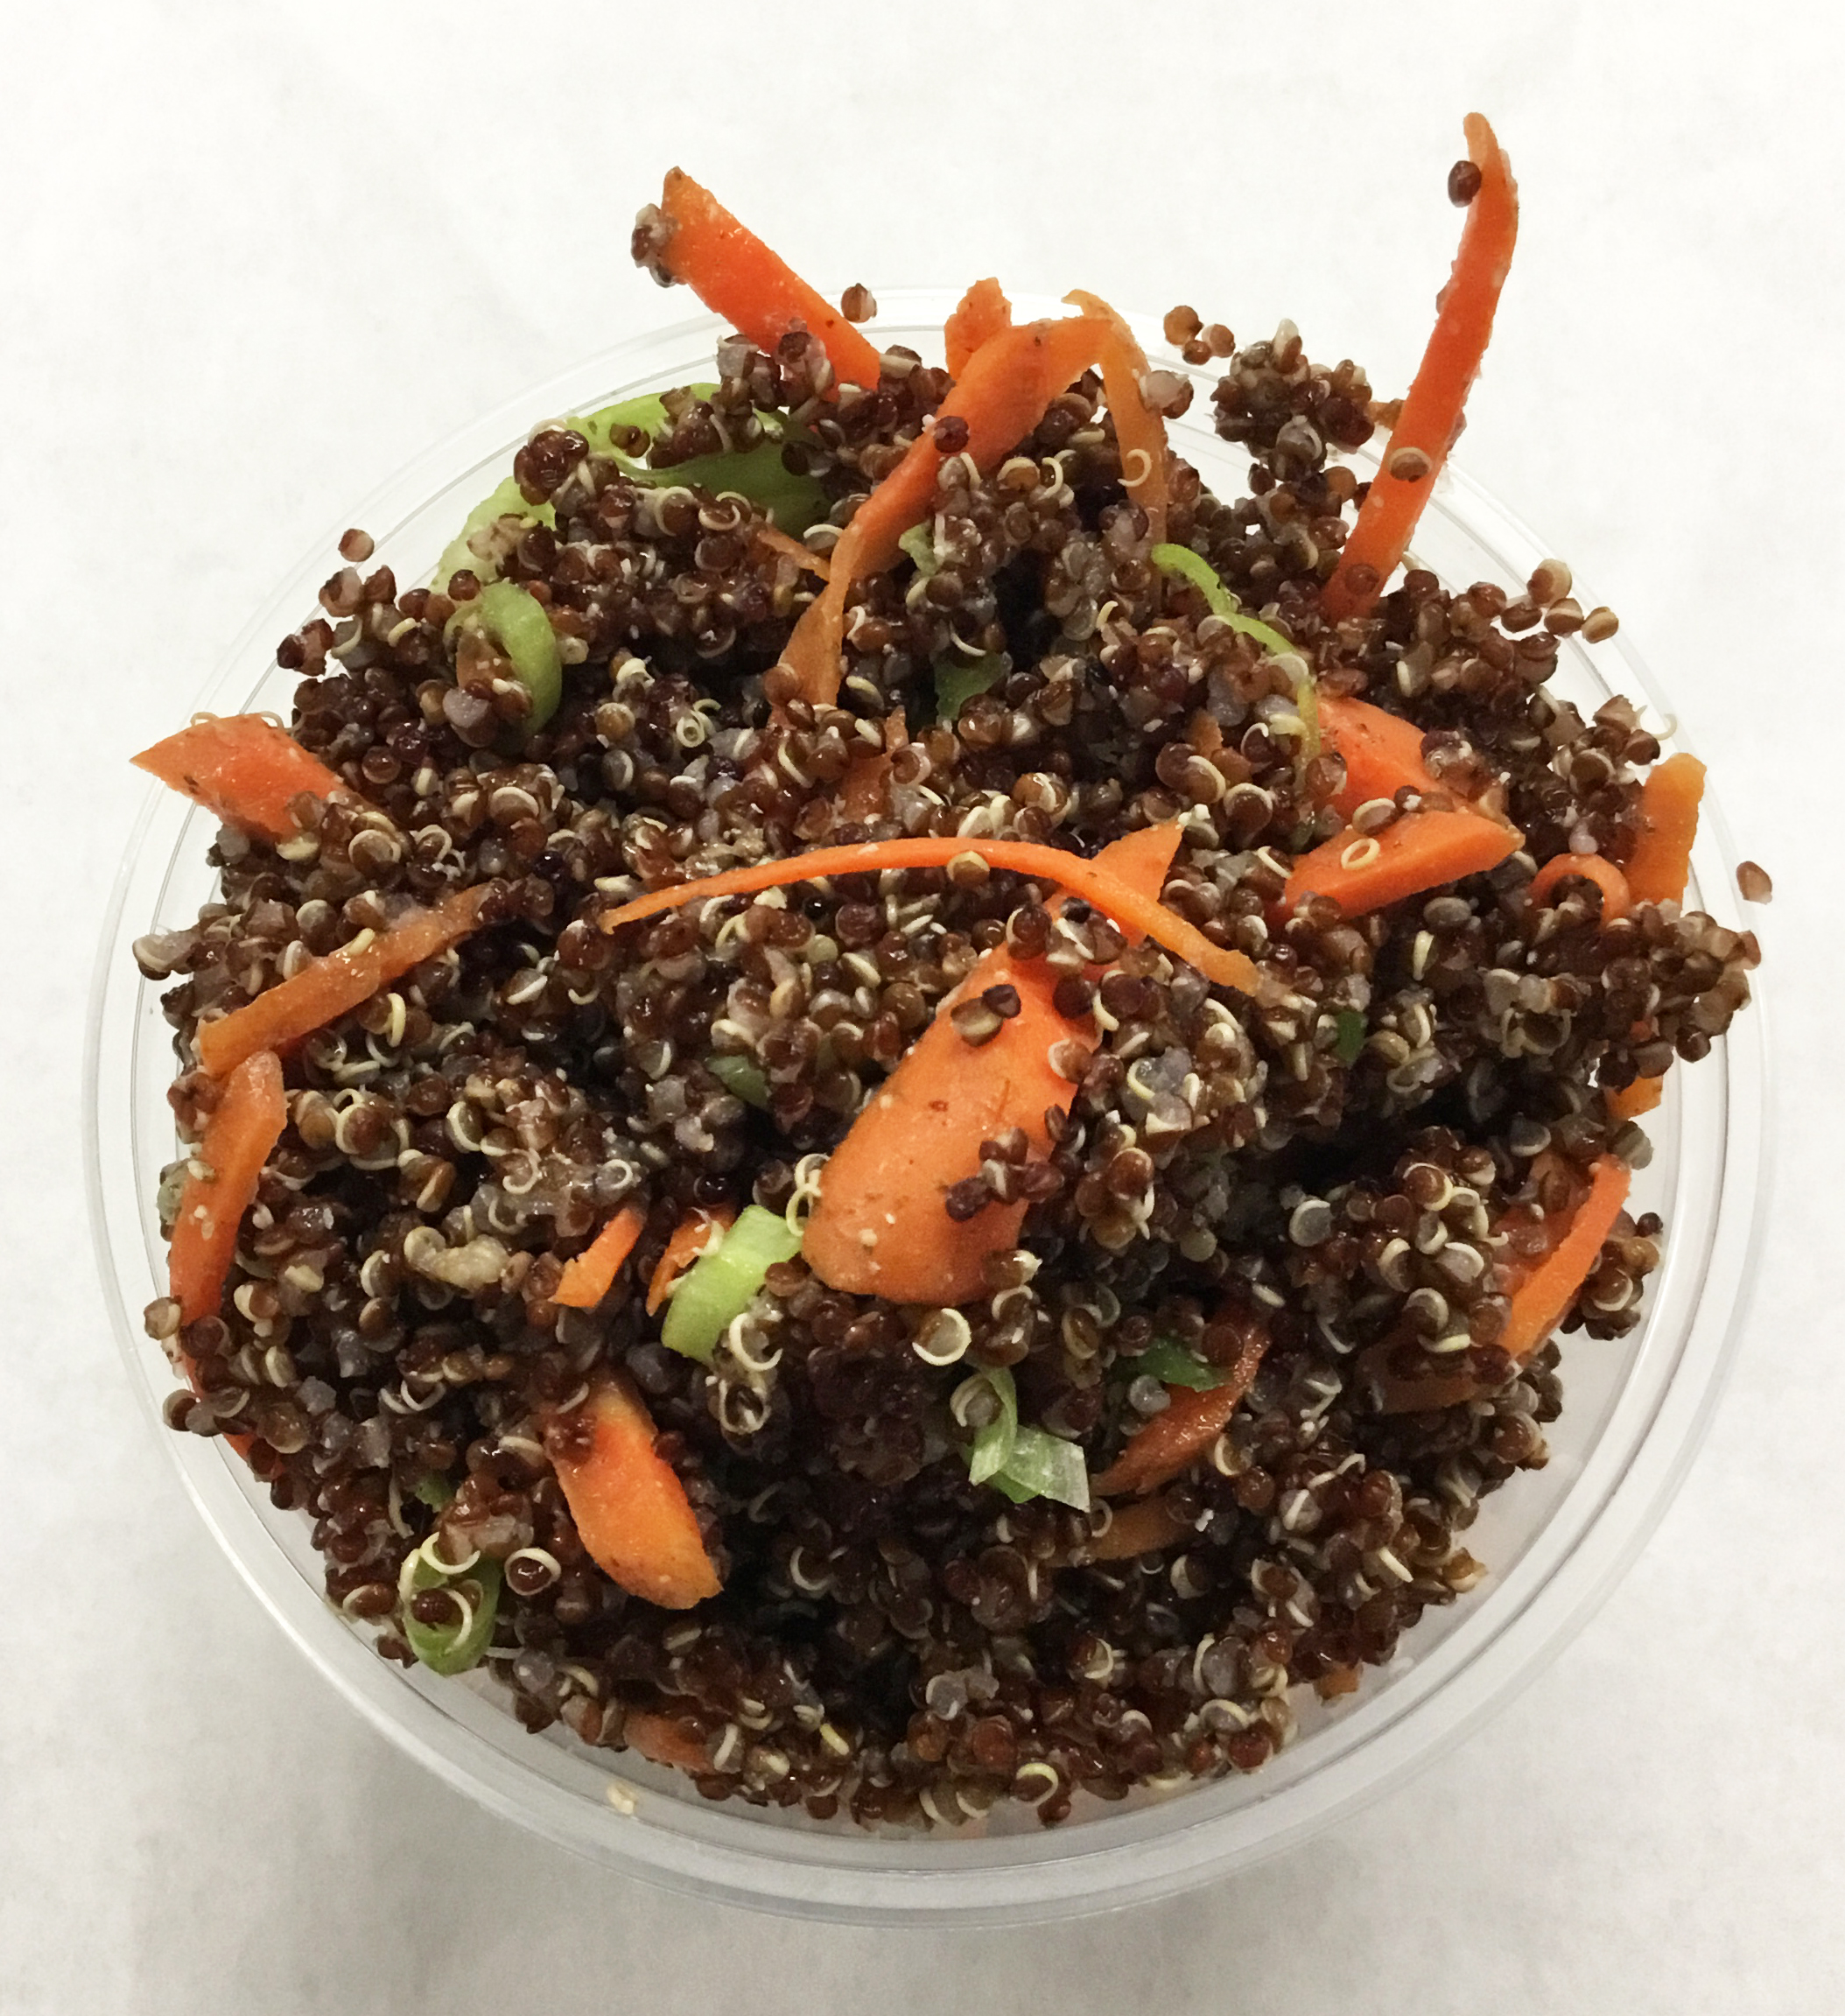 Red quiona, carrots and scallions with a chia seed and umeboshi vinegar dressing.